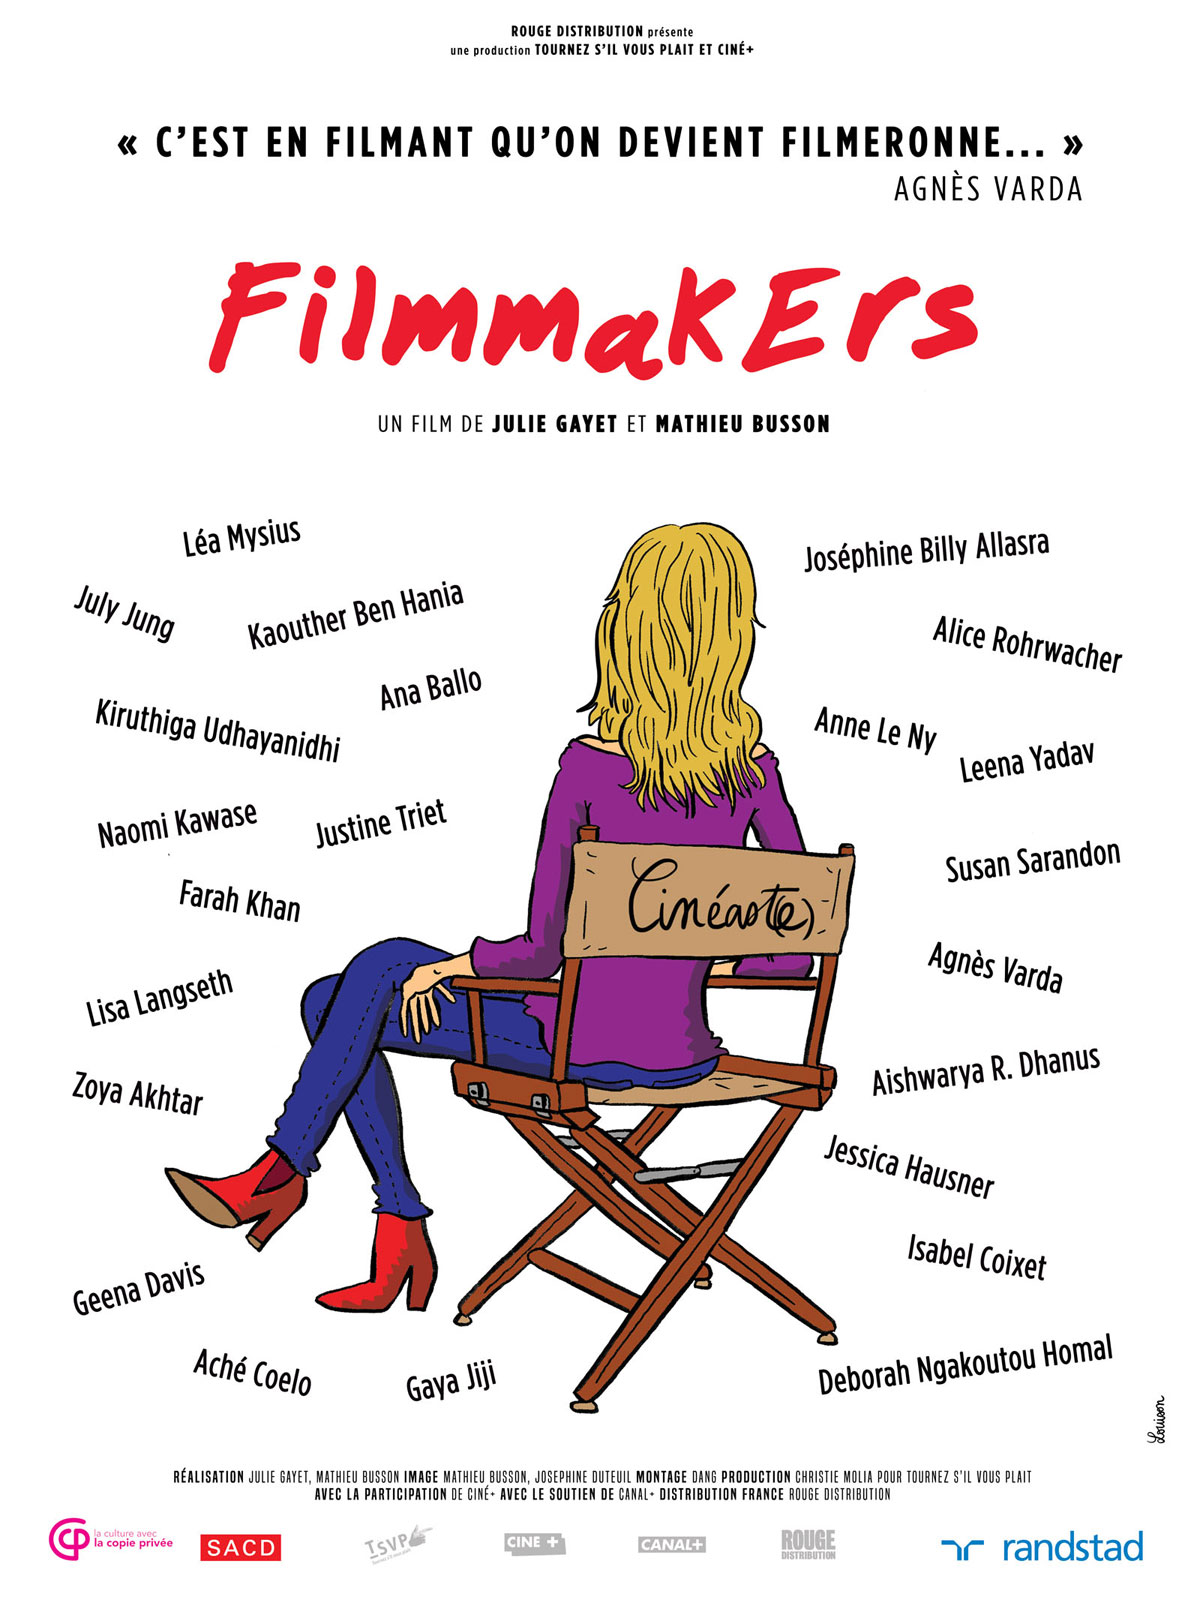 filmmakers-documentaire-julie-gayet-projection-rennes